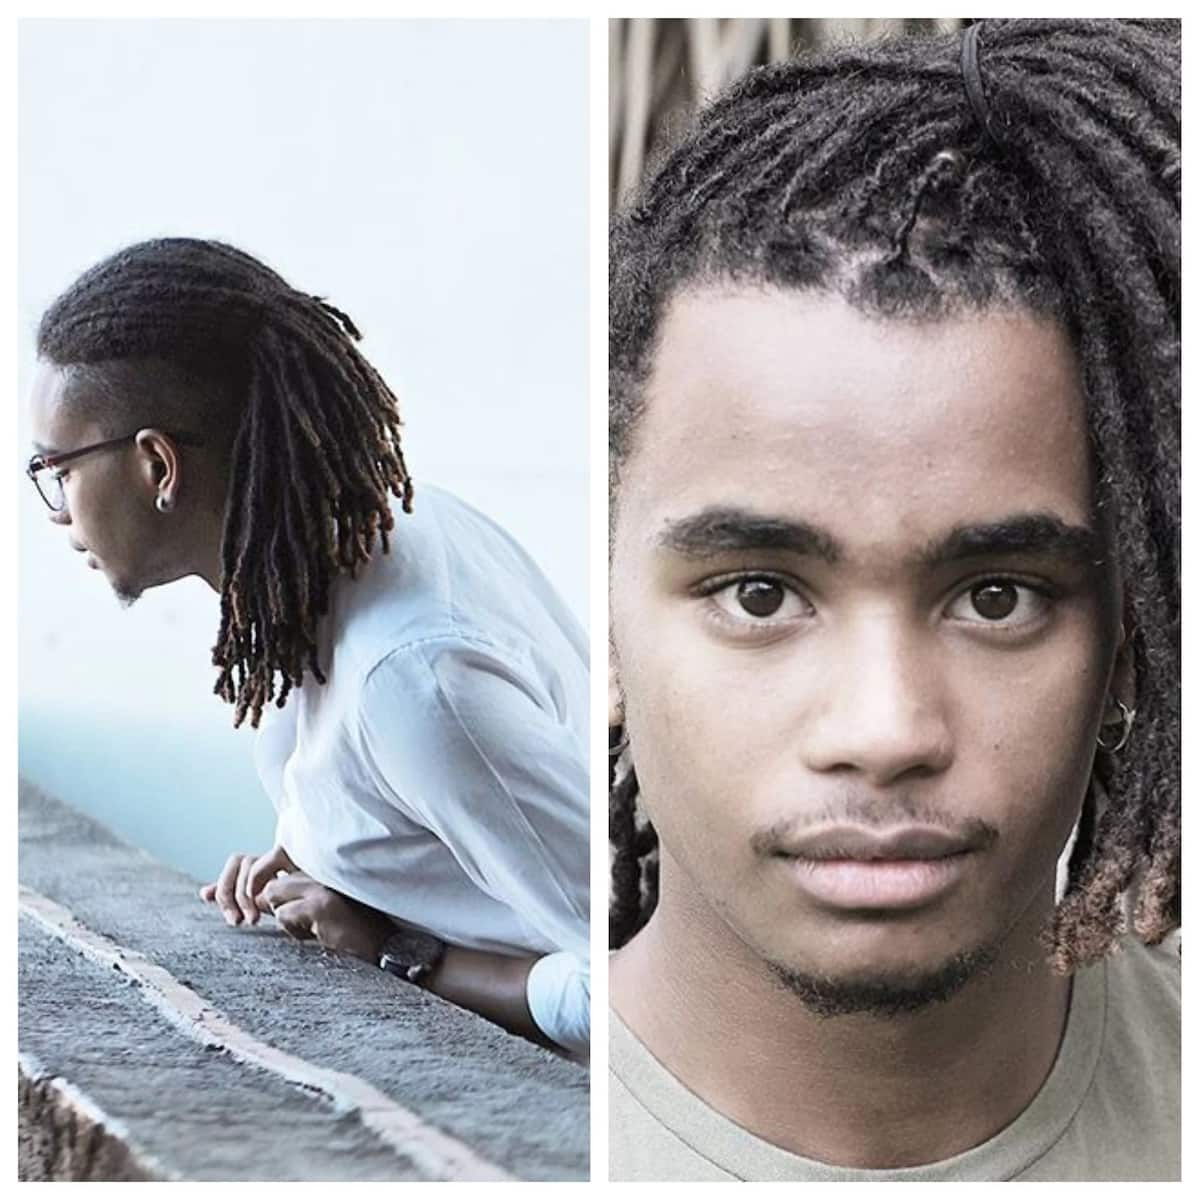 Just a bunch of 16 latest photos of Kibaki's grandson looking like sweet caramel chocolate